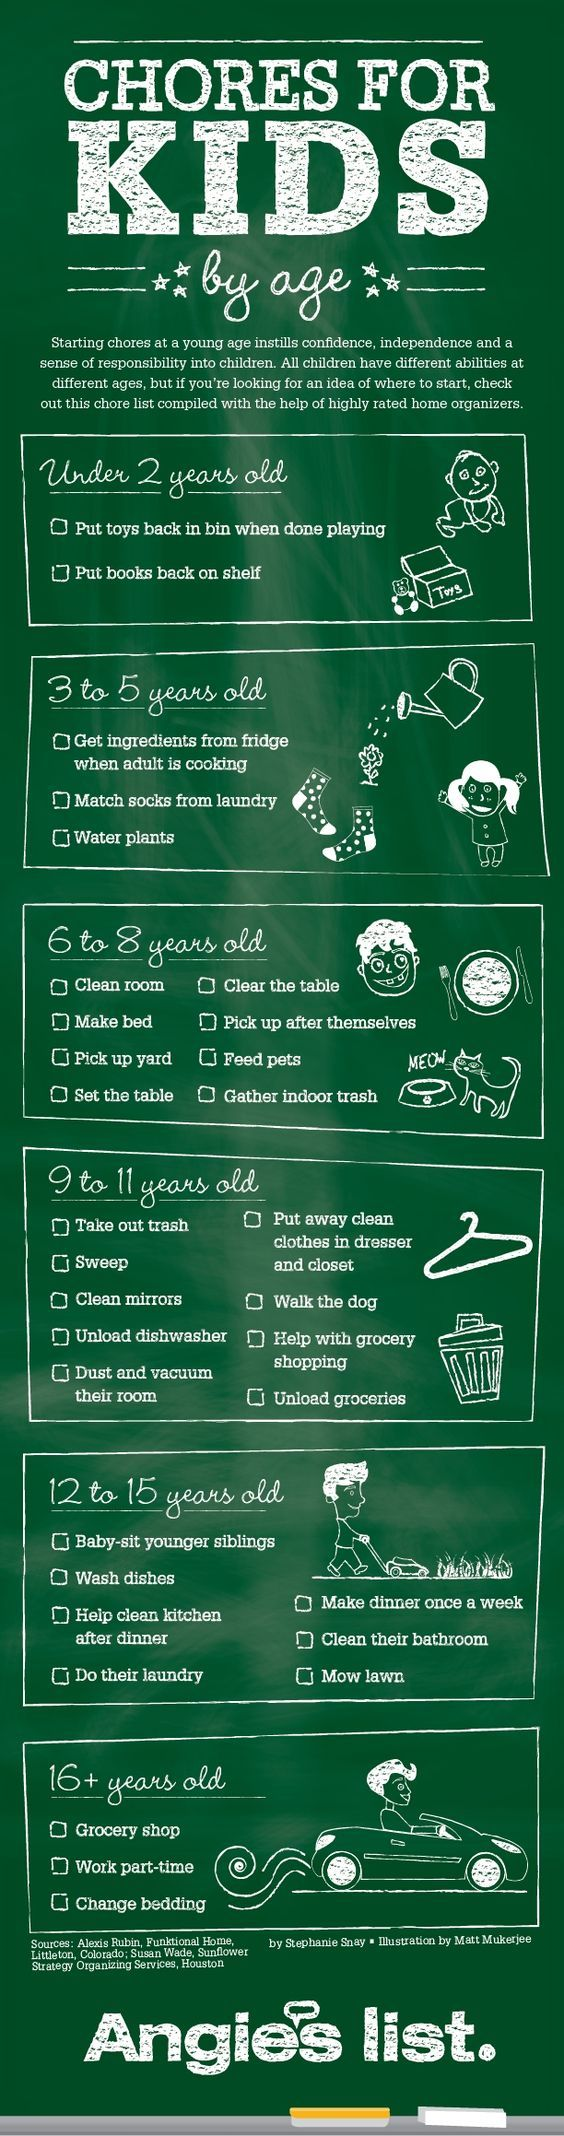 angie's list chores for kids